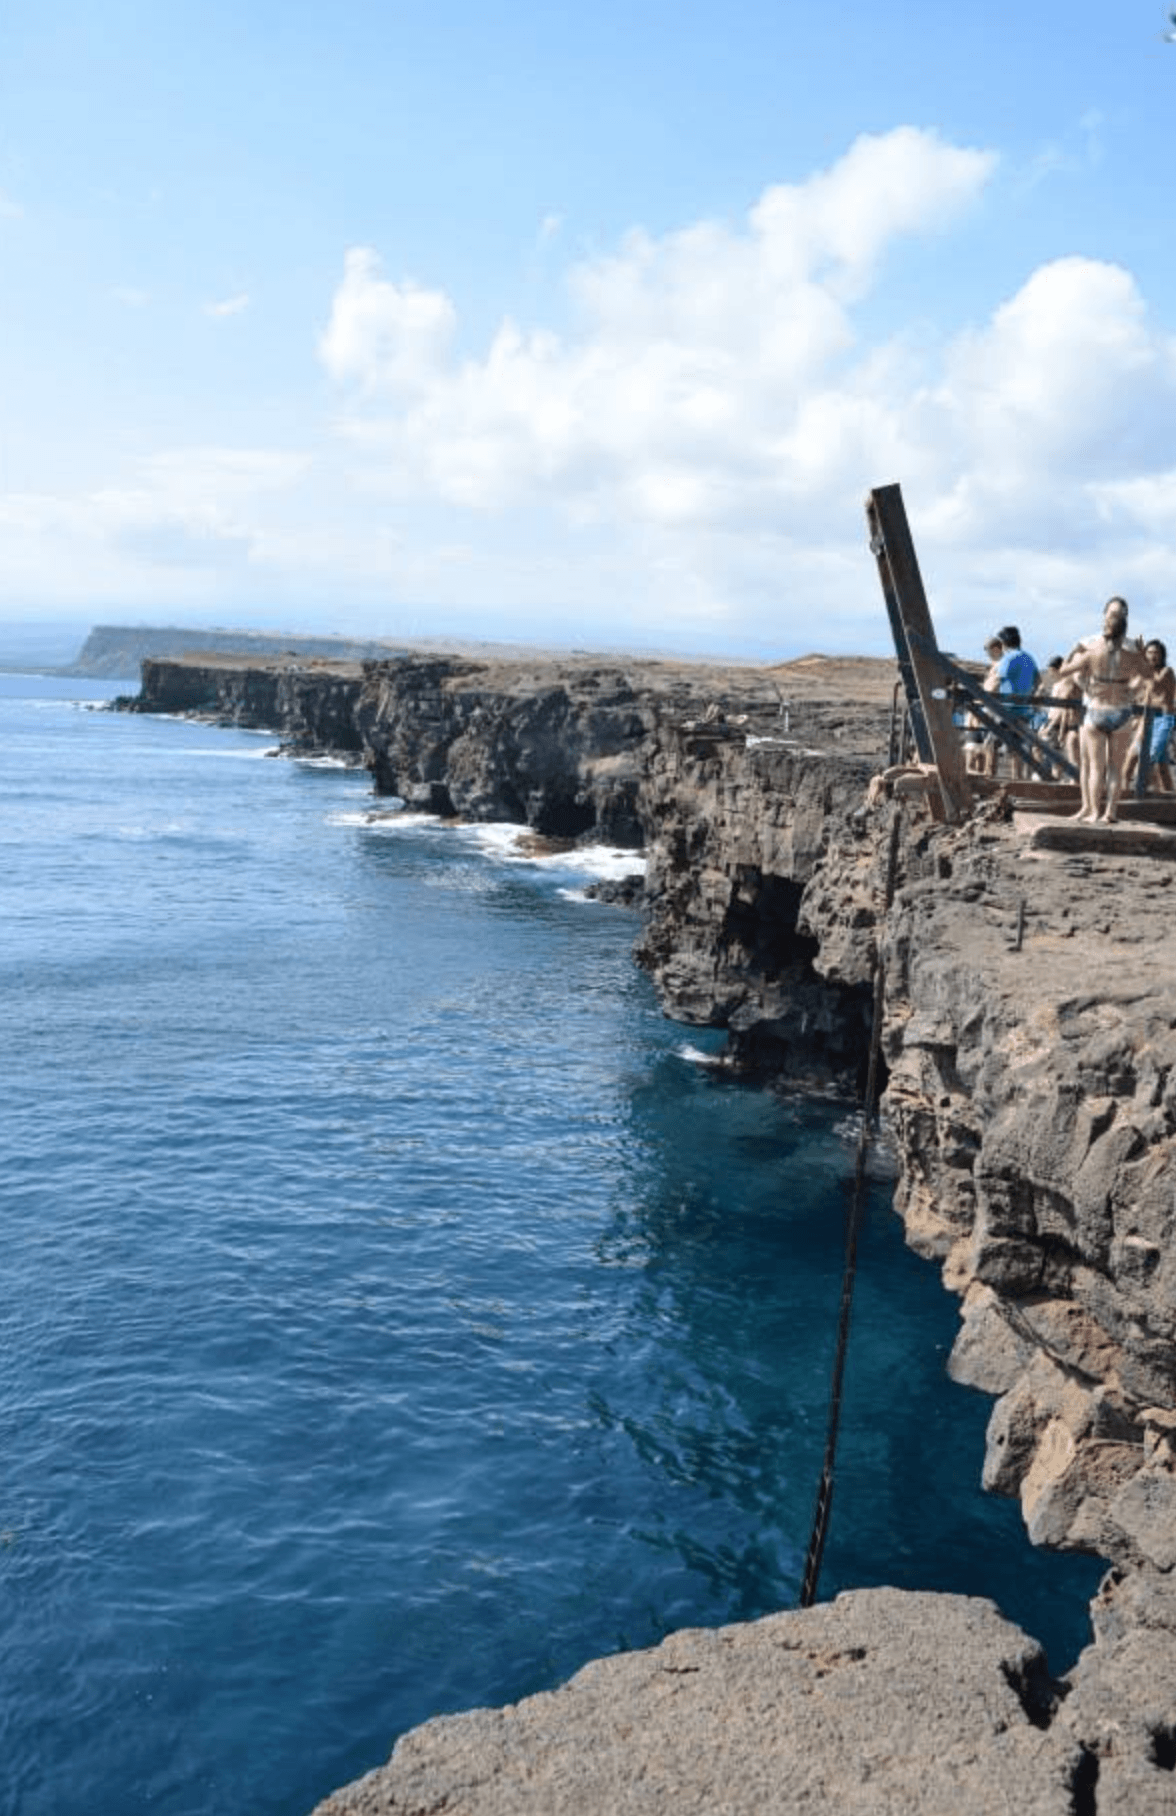 BEST FREE THINGS TO DO IN HAWAII | Free Hawaii Activities - What to do on Oahu for free - Free Activities on Oahu - Hawaii activities for free - Oahu vacation tips - Hawaii travel tips - #hawaii - Free things to do on Kauai - Free Things To Do On Big Island - Free Things To Do on Maui - Free Things to do on Lanai - #oahu #maui #hawaii #kauai #lanai #travelblog